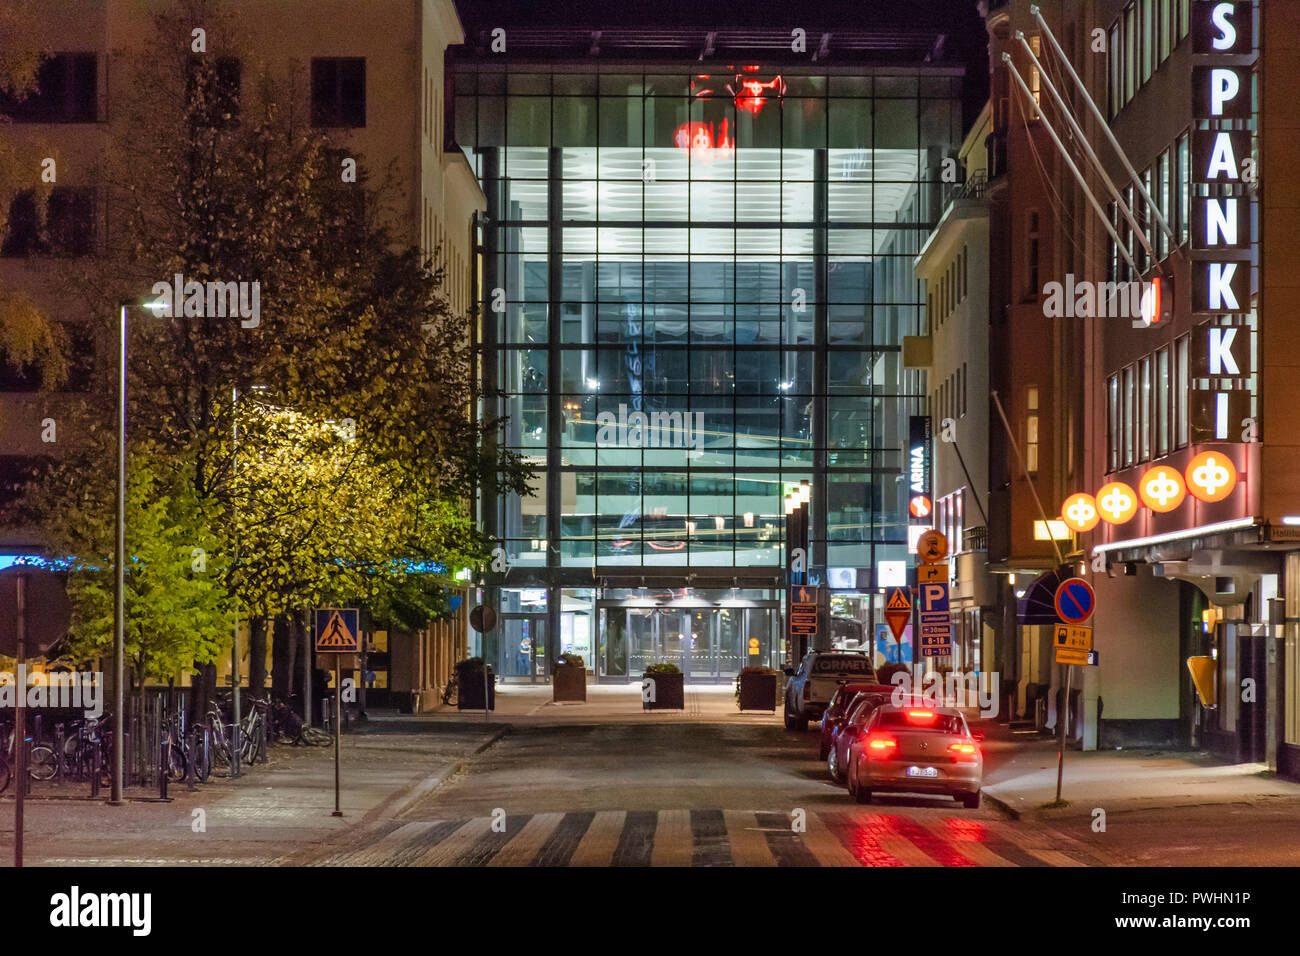 Valkea shopping mall at night in Oulu Finland Stock Photo